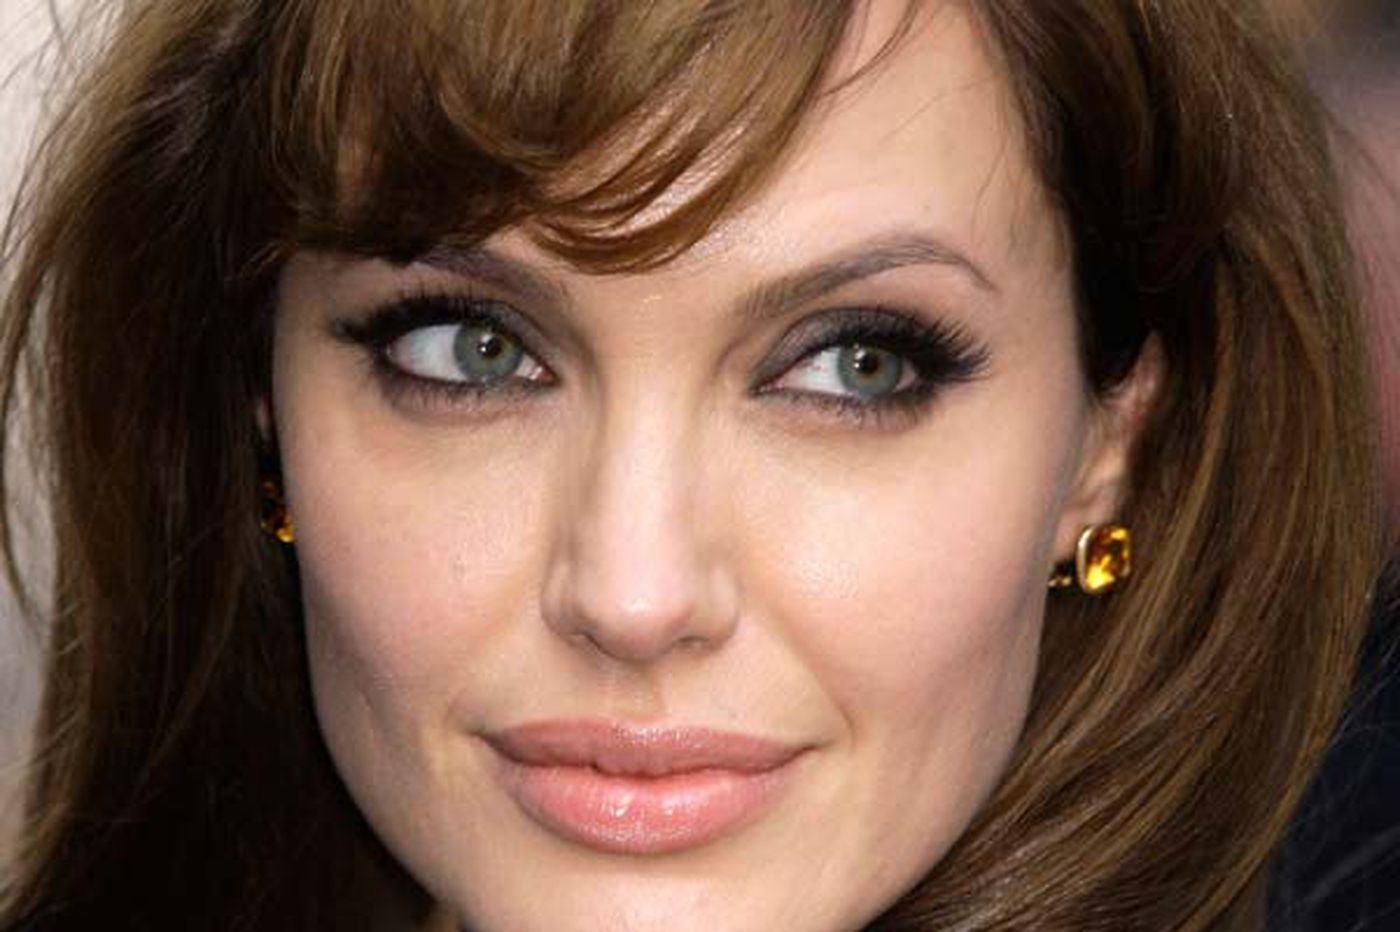 Jolie's difficult medical decision wins praise